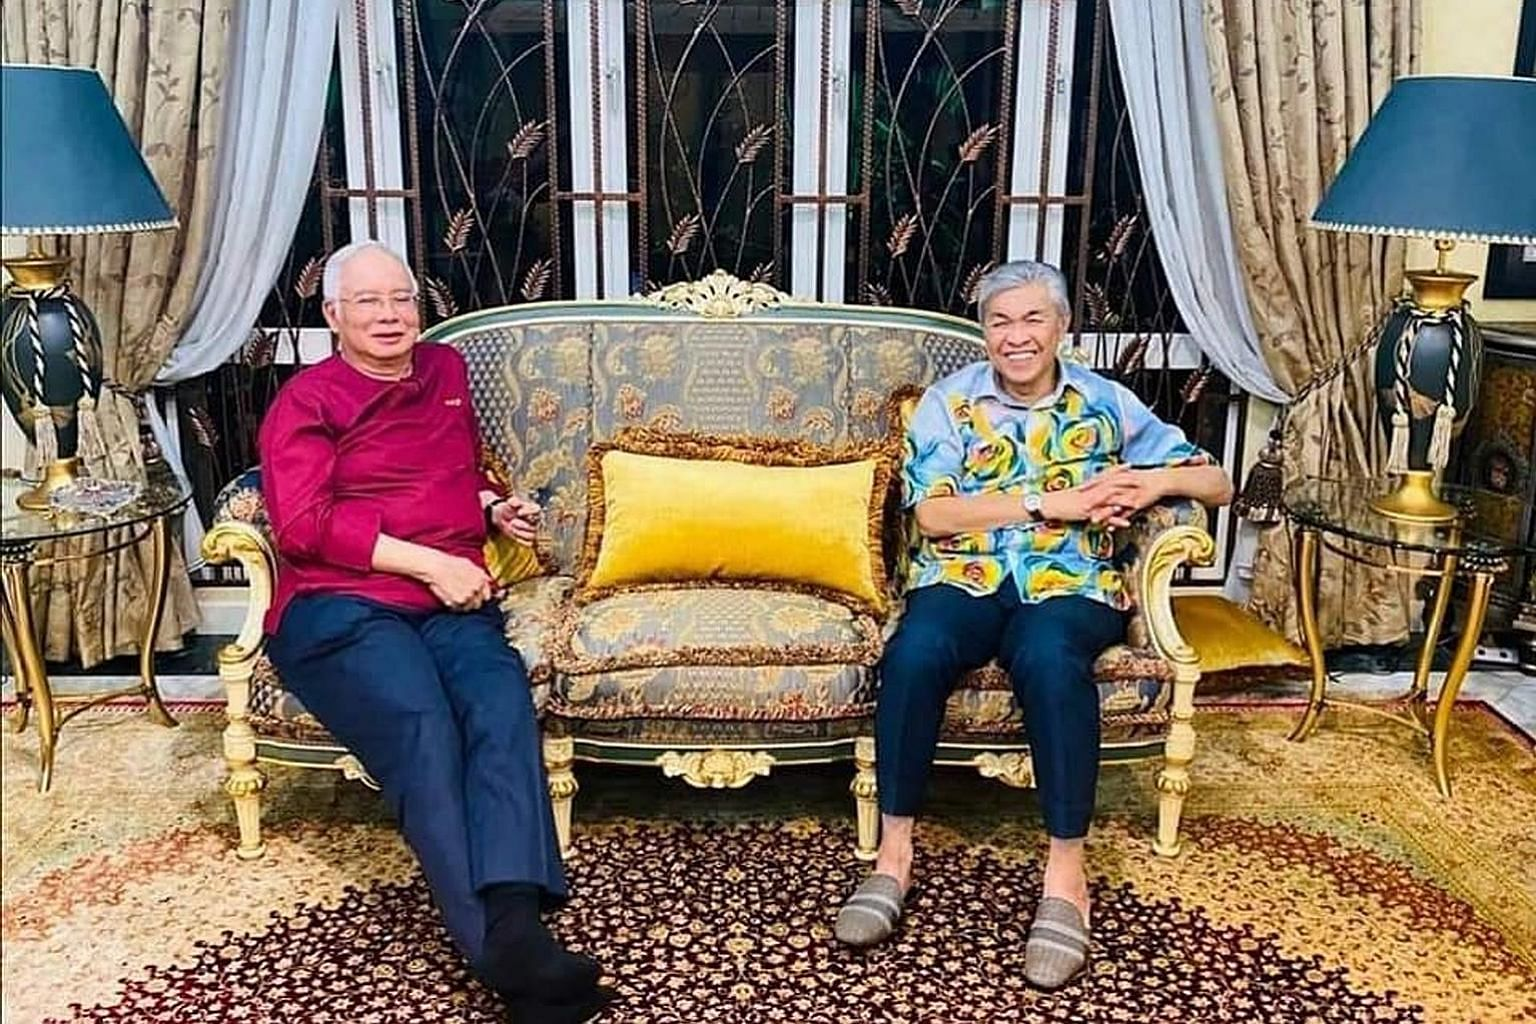 Umno president Zahid Hamidi (right) and his predecessor Najib Razak in a photo posted by Zahid on social media on Tuesday. Zahid's post comes after weeks of rapprochement with Najib.